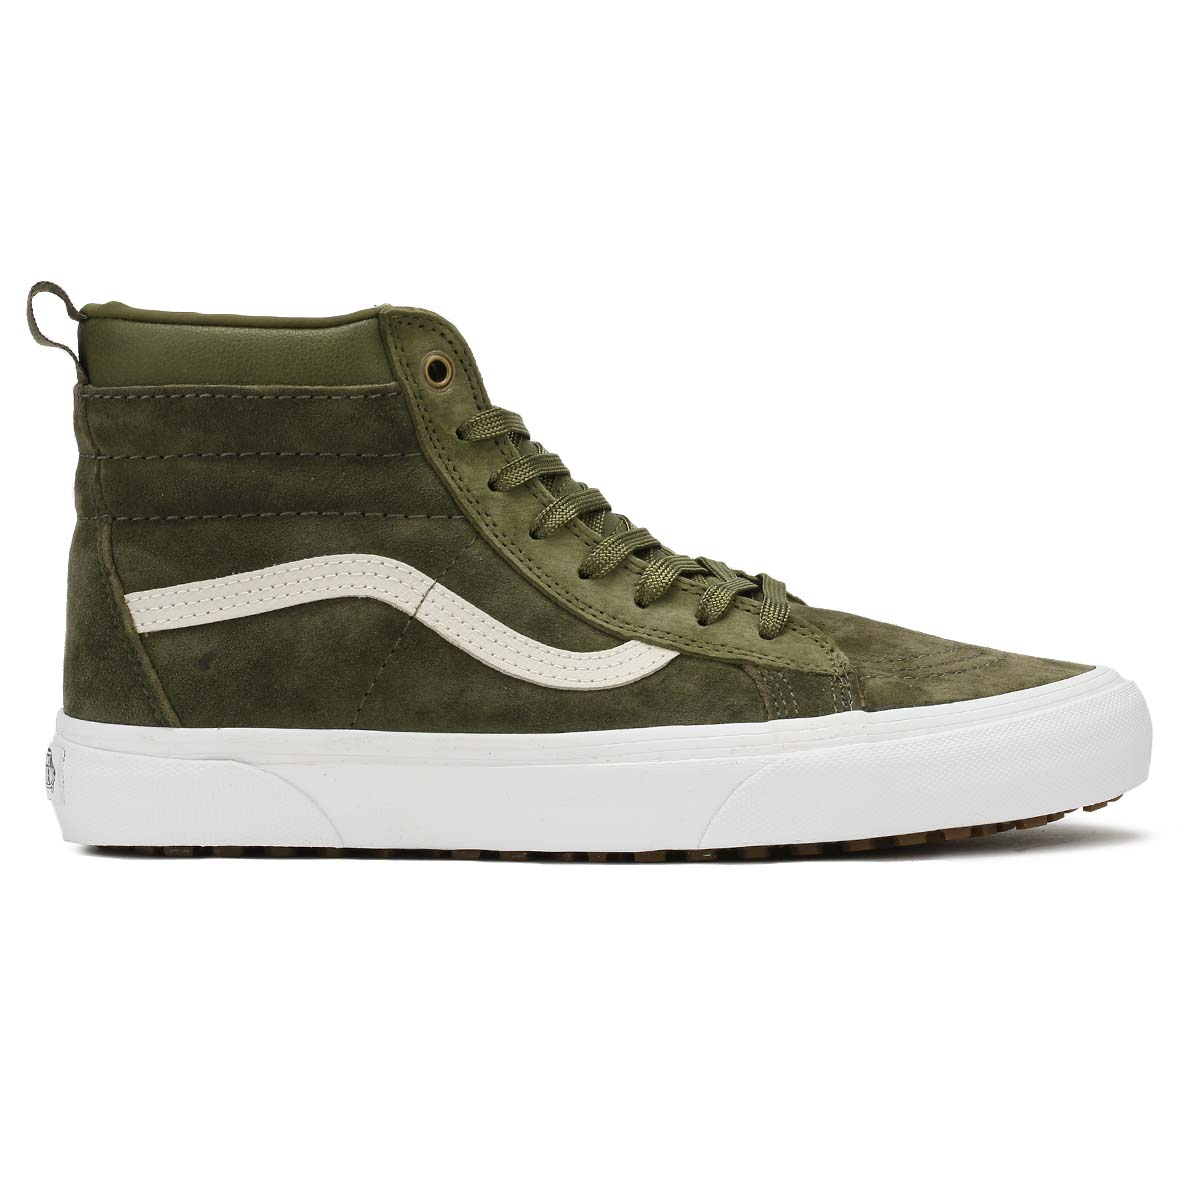 Vans Mens Trainers Winter Moss Military Green SK8-Hi MTE Casual Skate Shoes